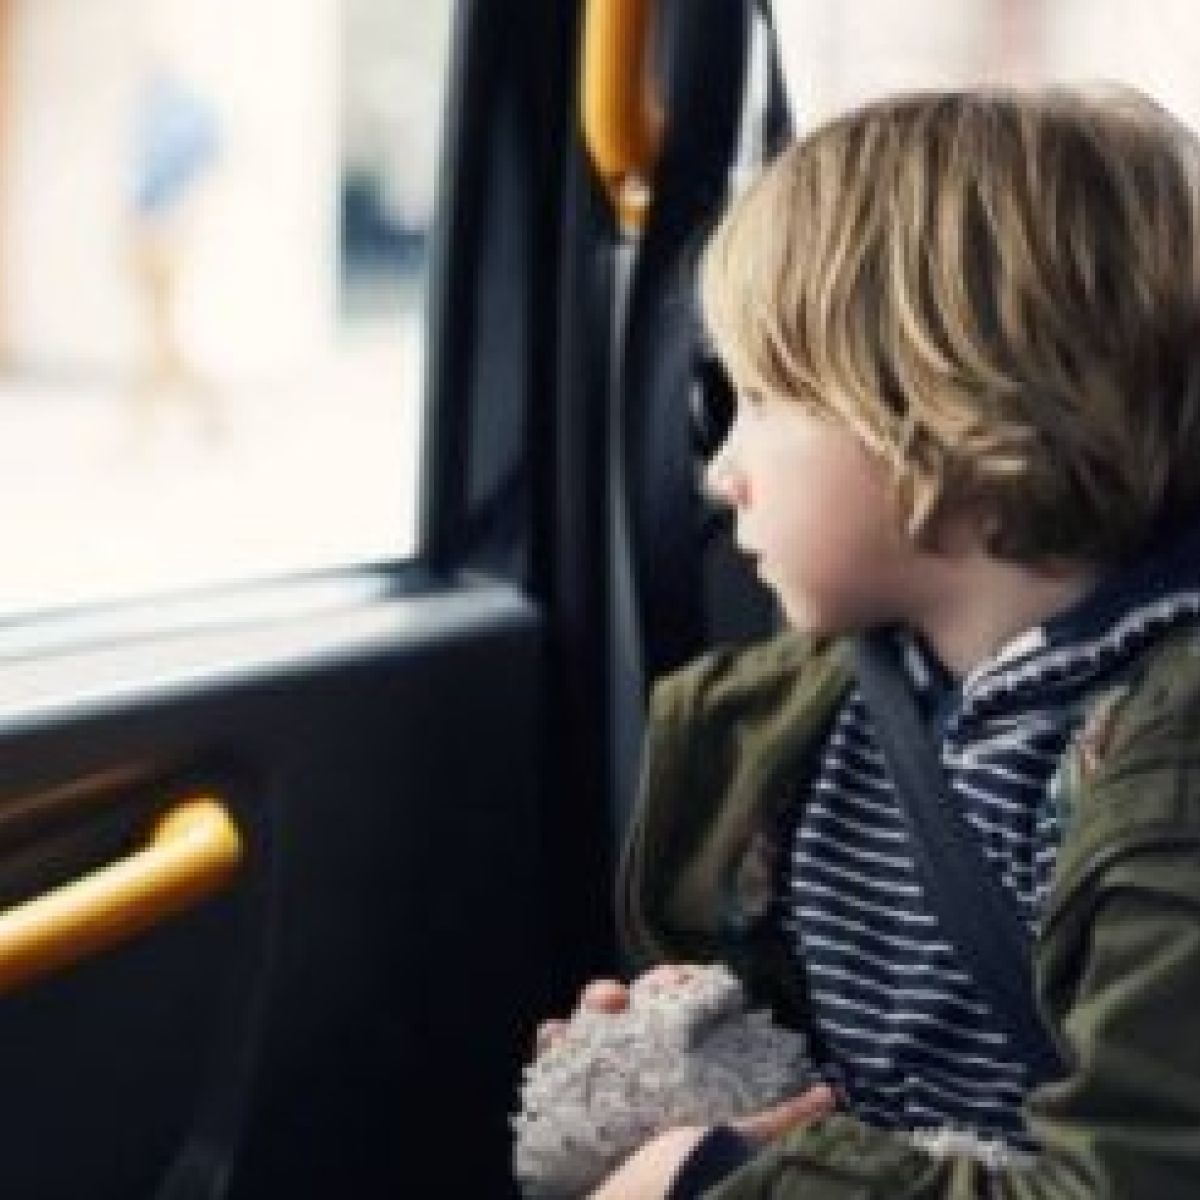 David McWilliams: The economics of driving a child to school